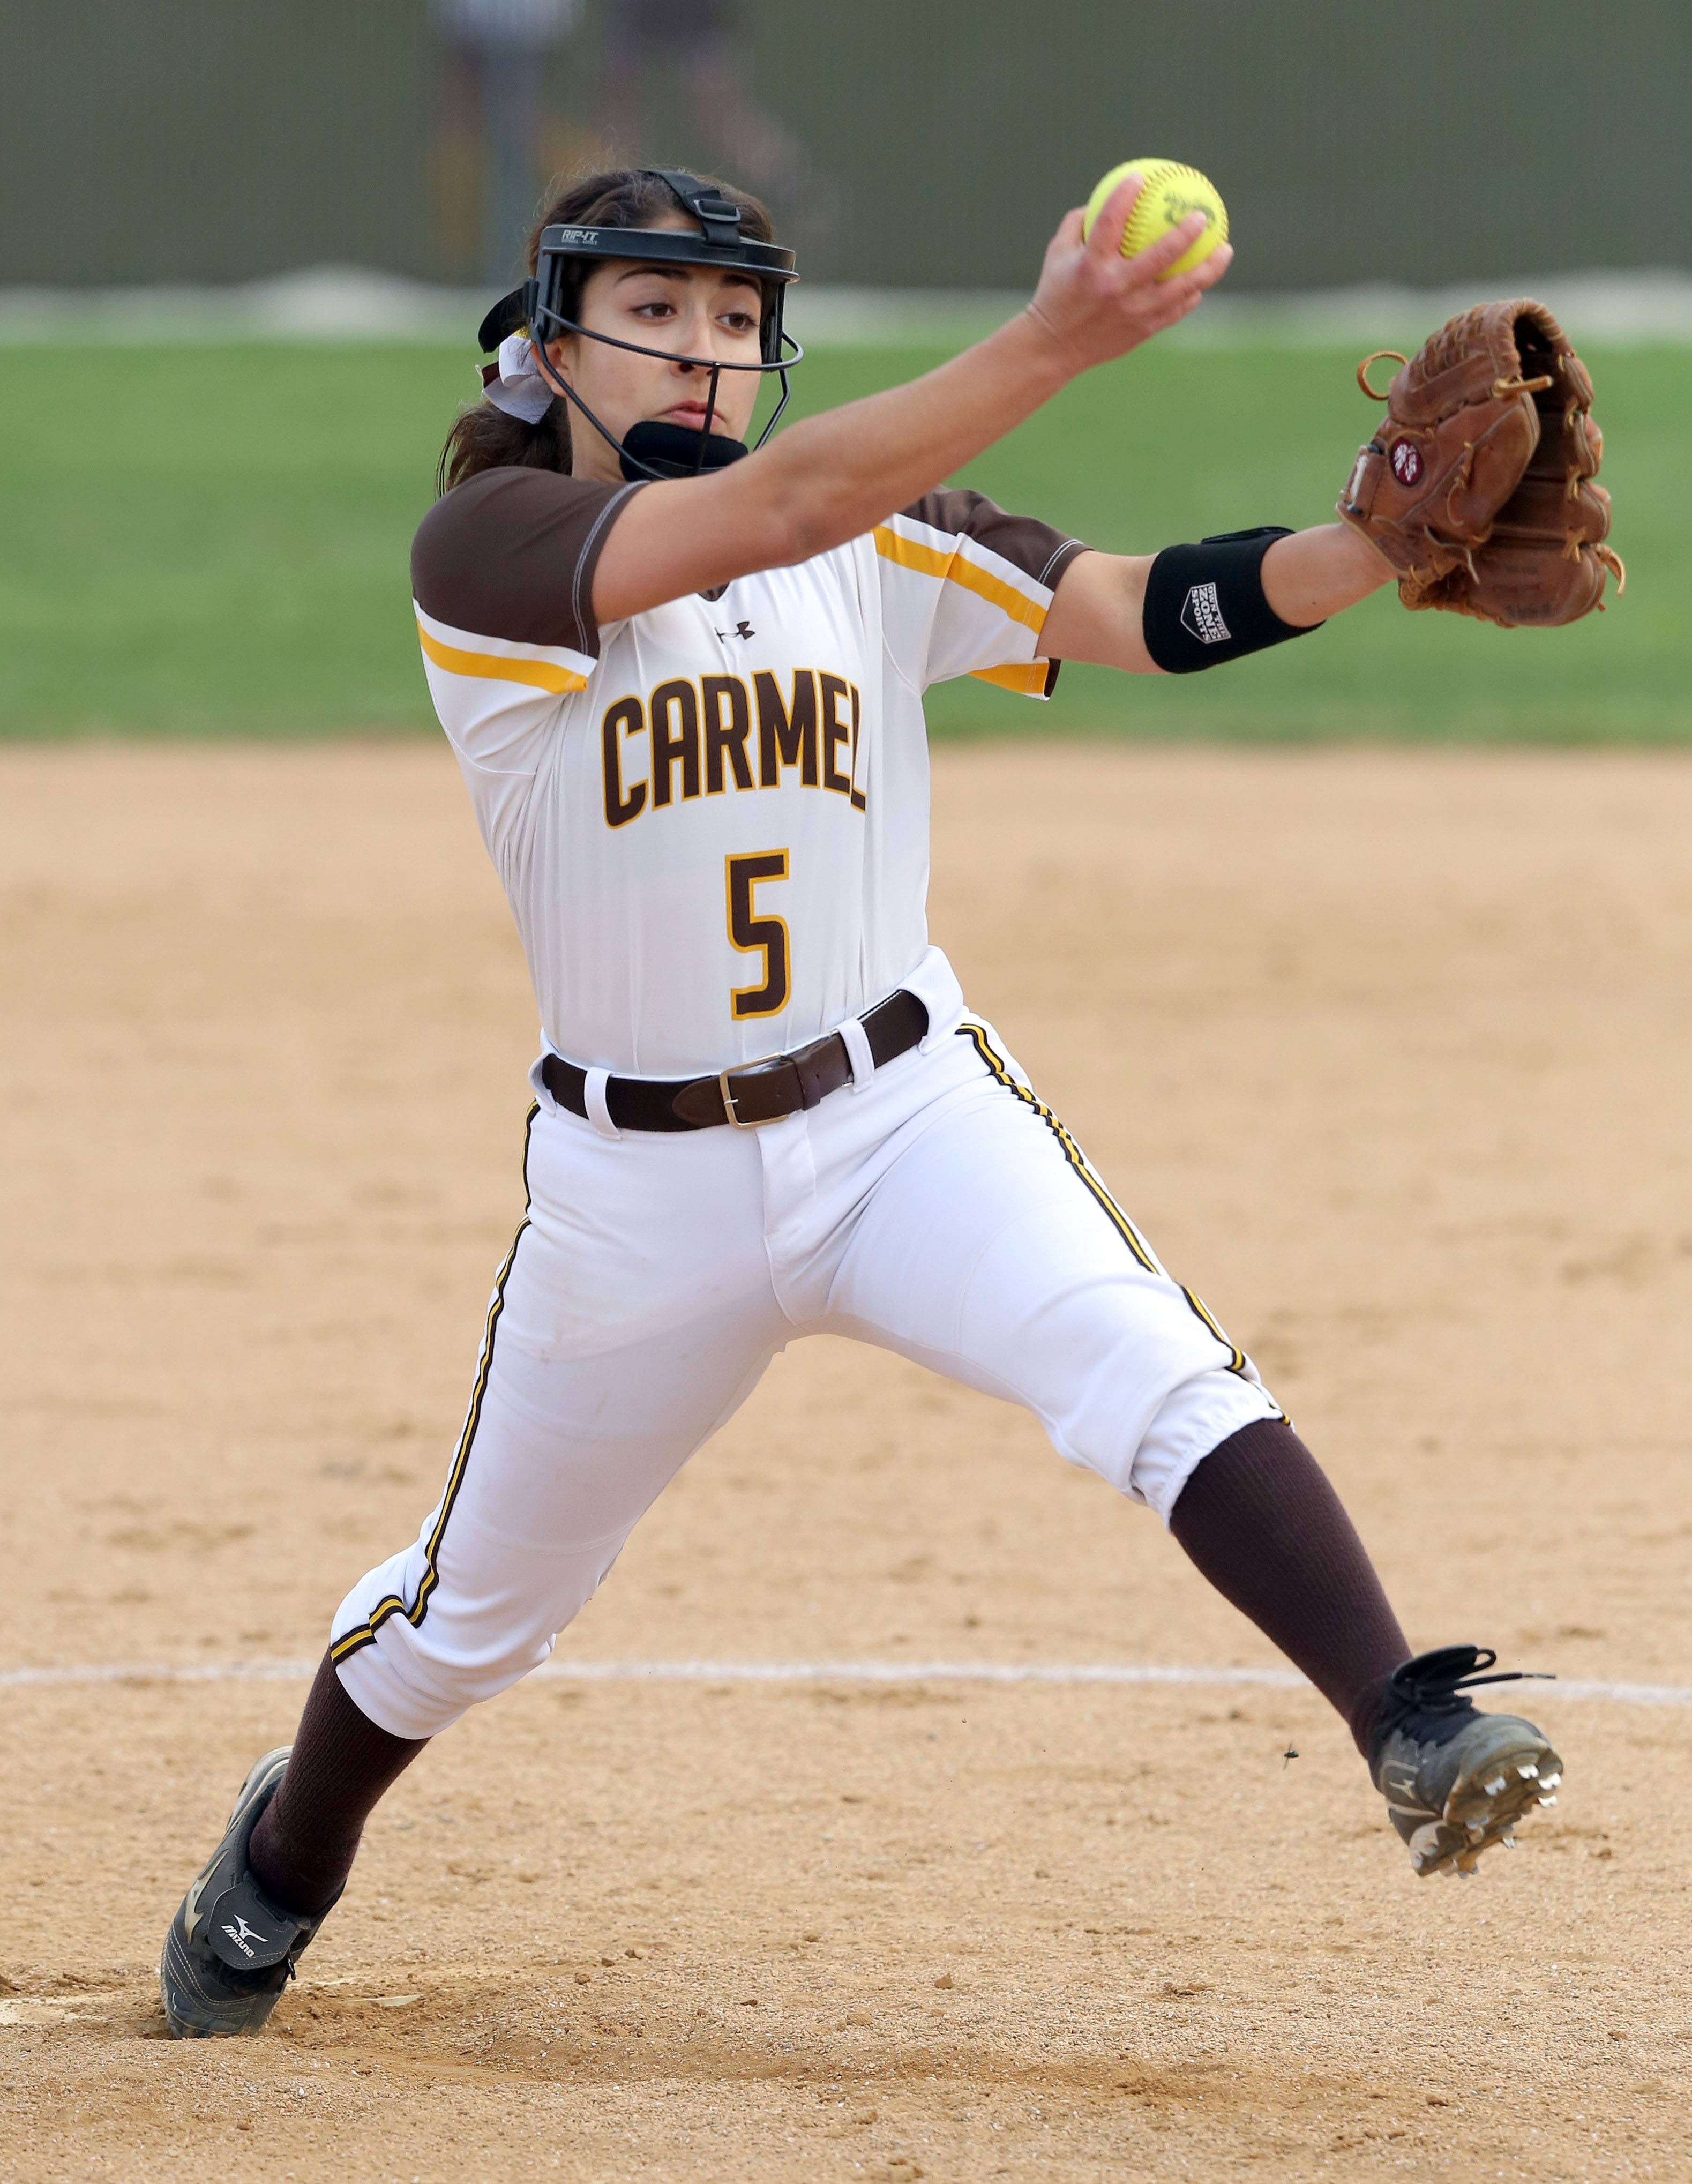 Carmel's Mia Dicara pitches against Nazareth on Wednesday in Mundelein.